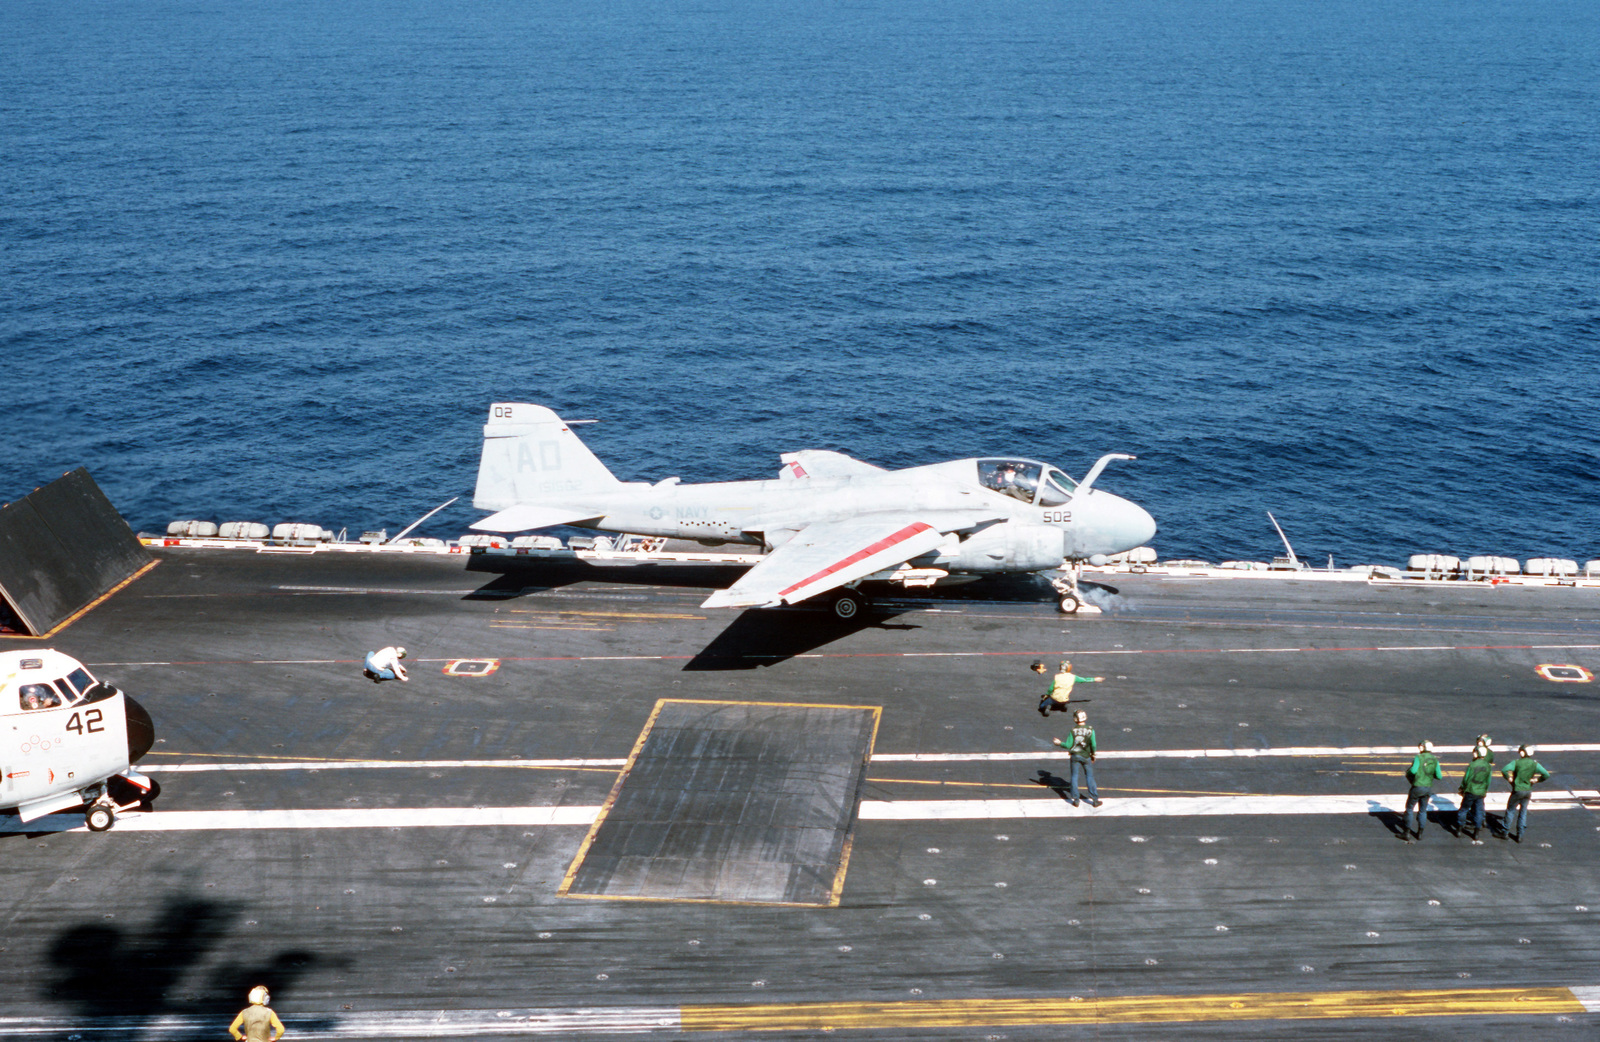 A Strike-Fighter Squadron 111 (VFA-111) A-6E Intruder aircraft is launched during flight operations aboard the nuclear-powered aircraft carrier USS DWIGHT D. EISENHOWER (CVN 69)